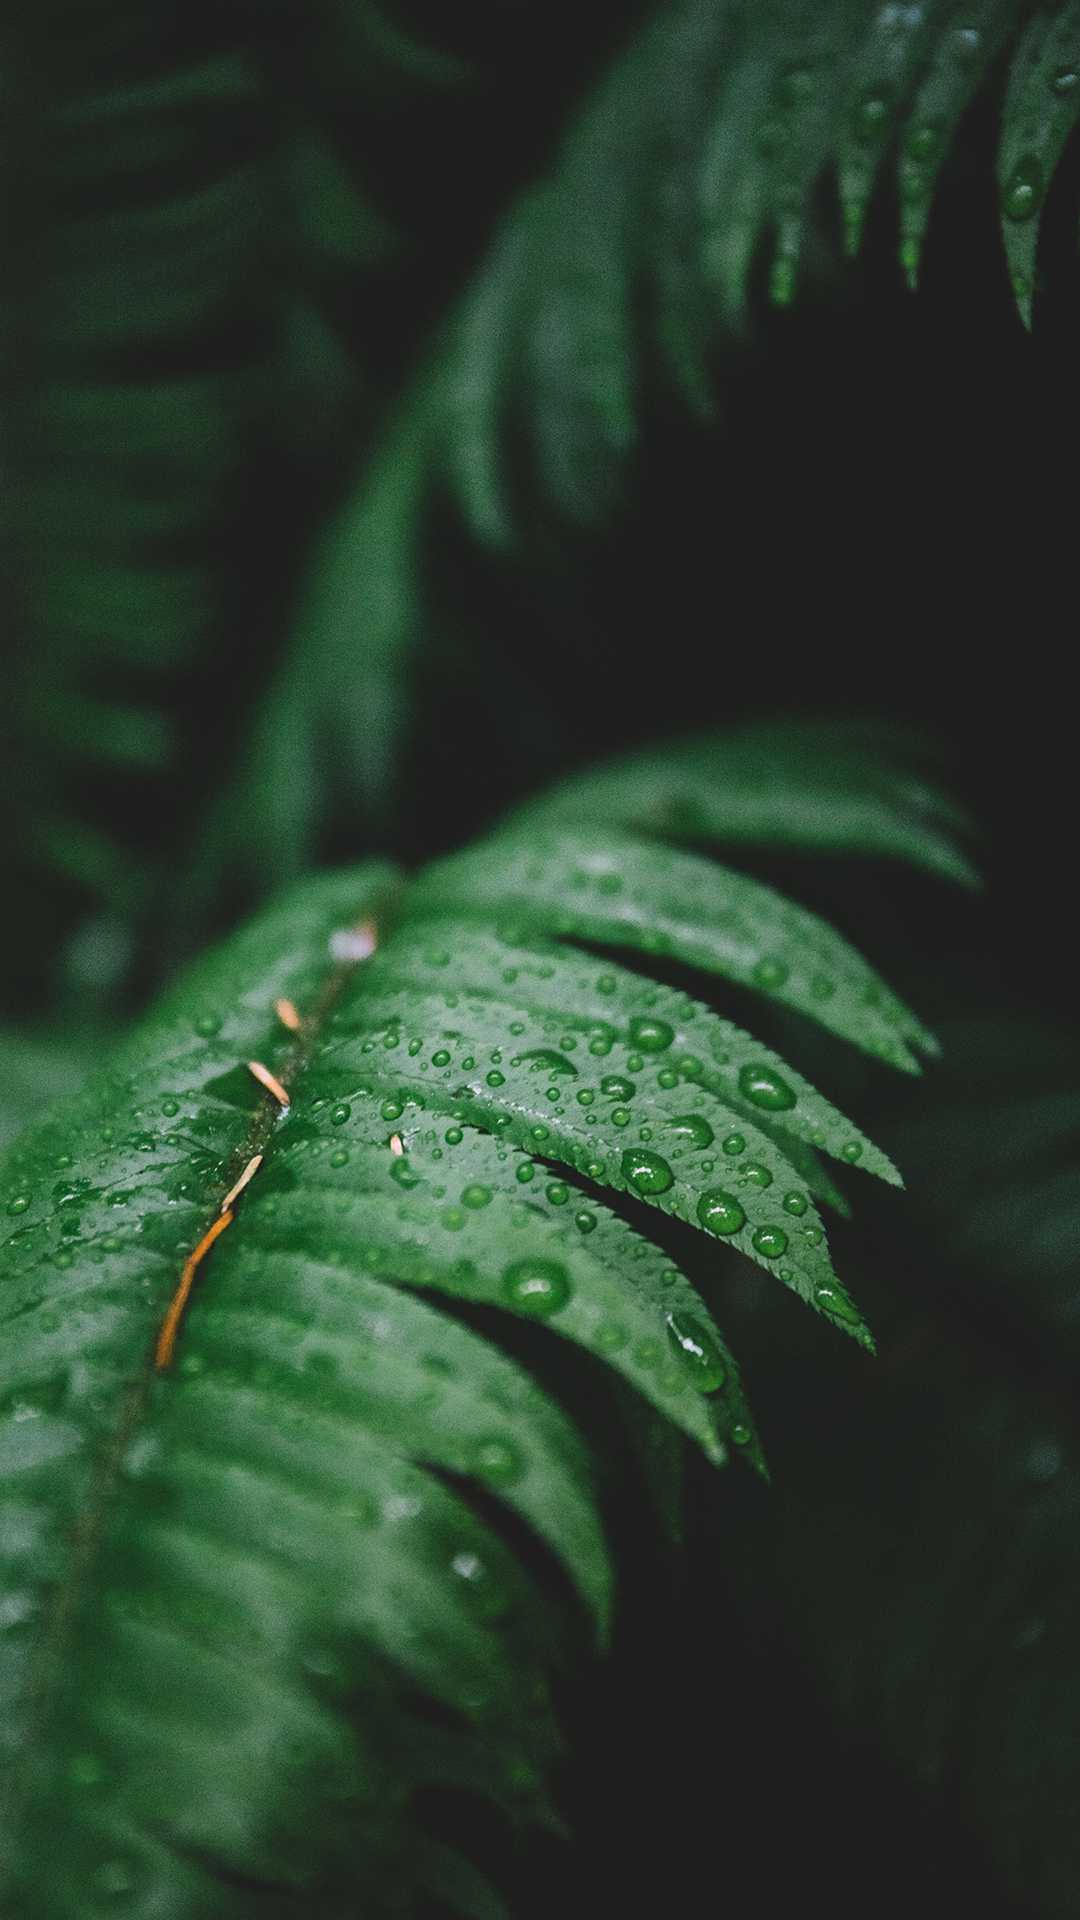 Water Drops In Forest Plant Iphone Wallpaper Iphone